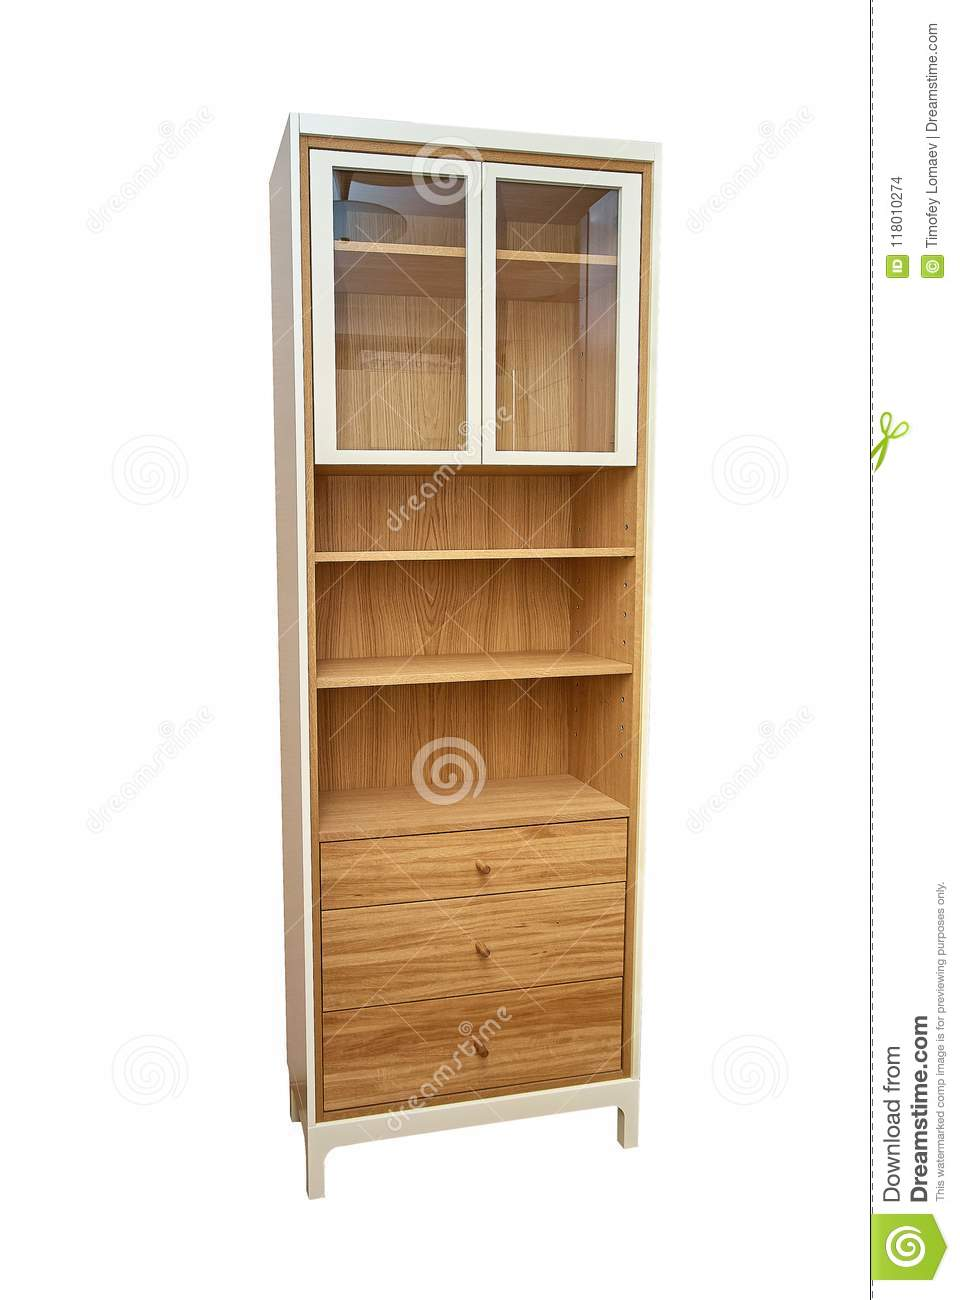 Wooden Kitchen Cupboard On A White Background Stock Photo Image Of